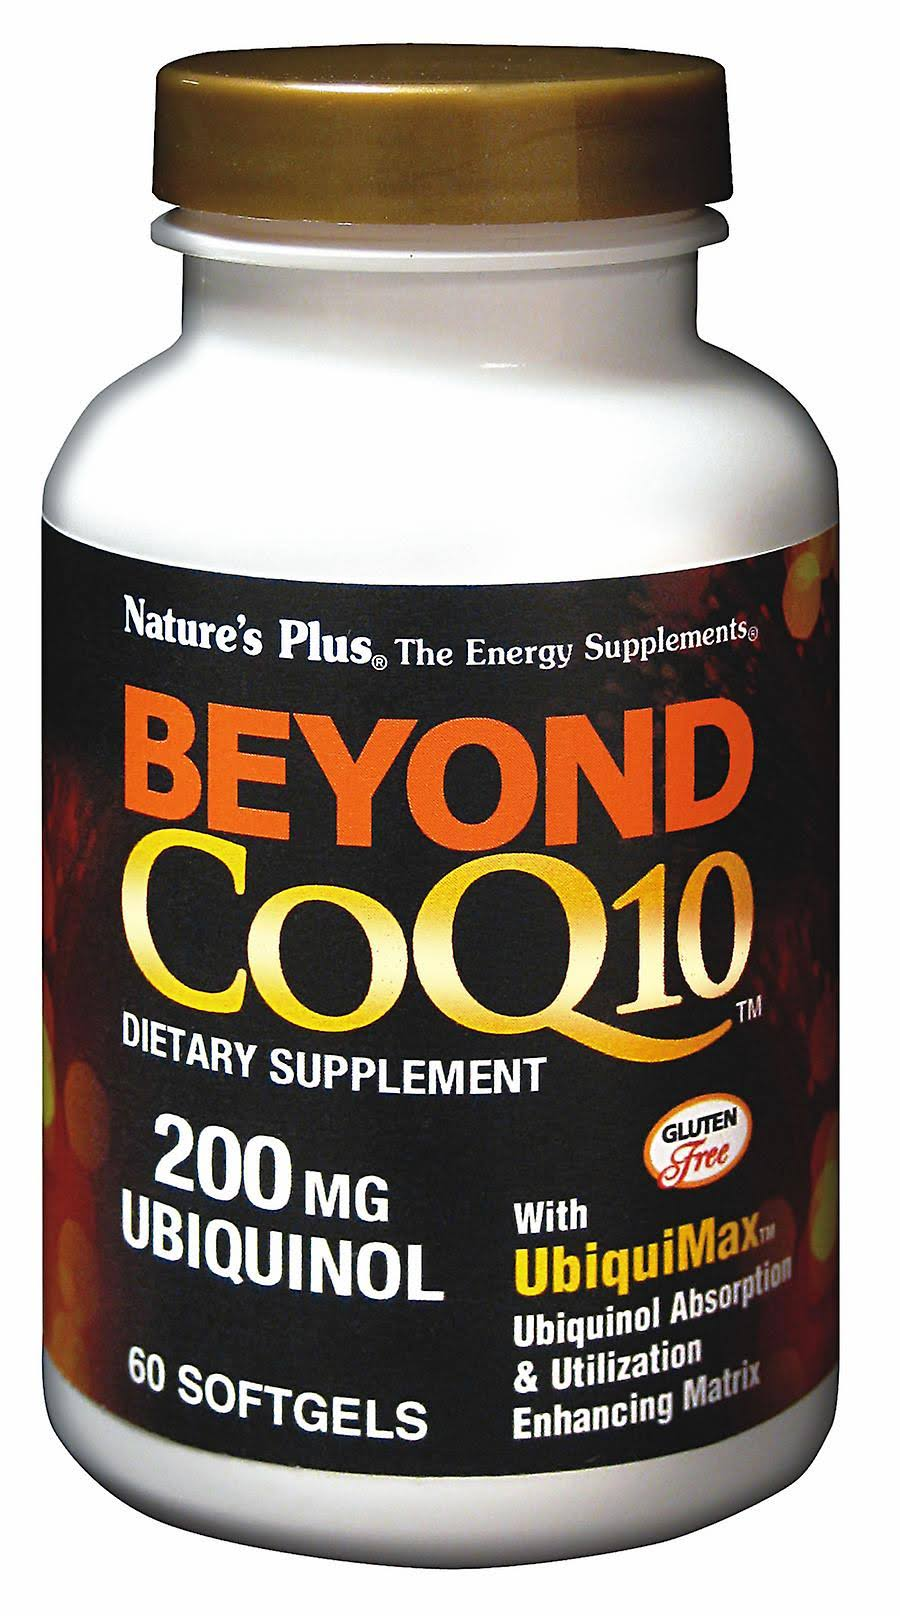 Nature's Plus Beyond CoQ10 Ubiquinol - 200mg, 60 Softgels